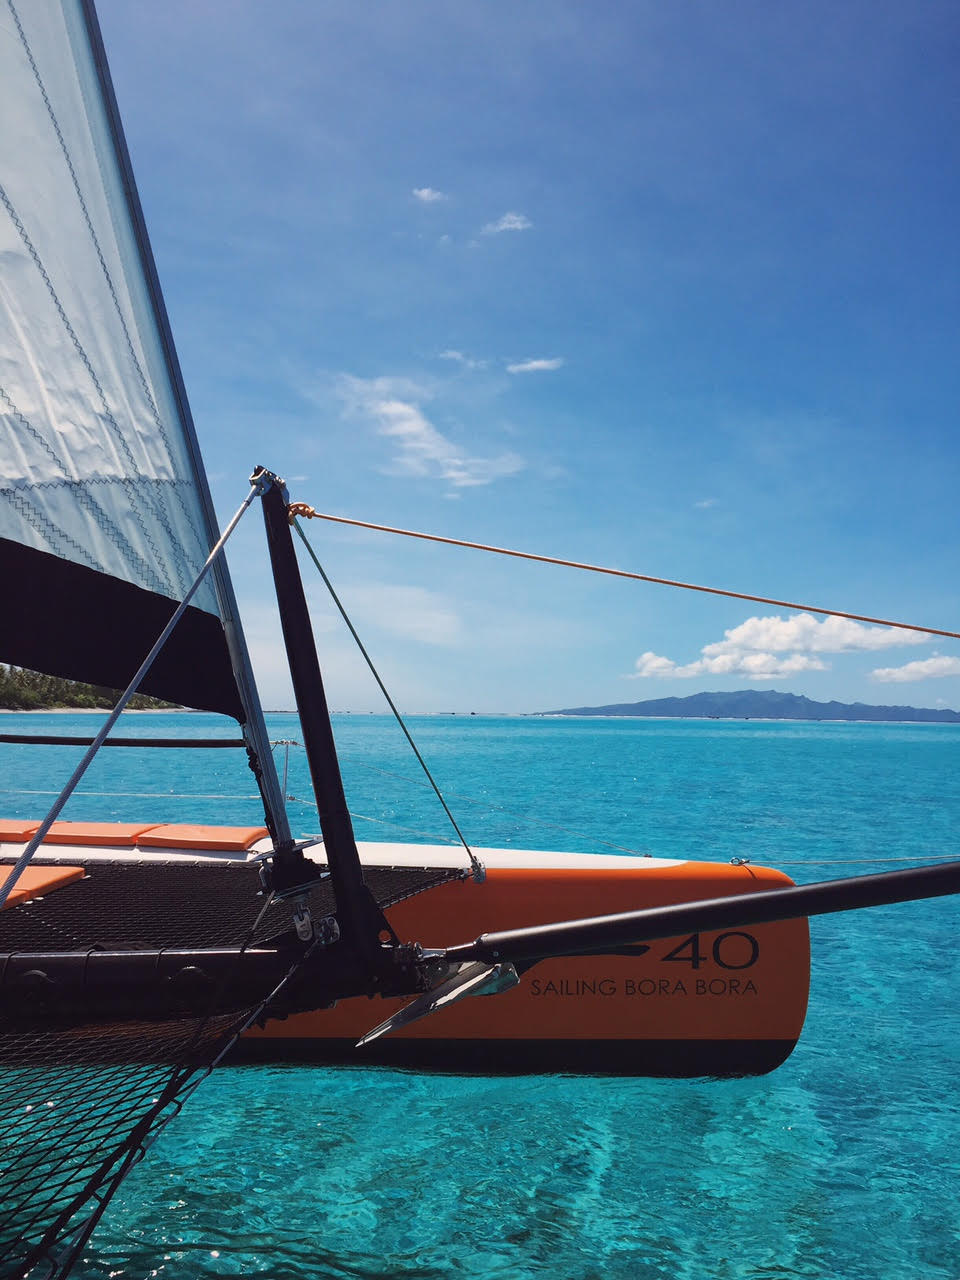 I was on this boat in Bora Bora. Life's adventures. It's the best.